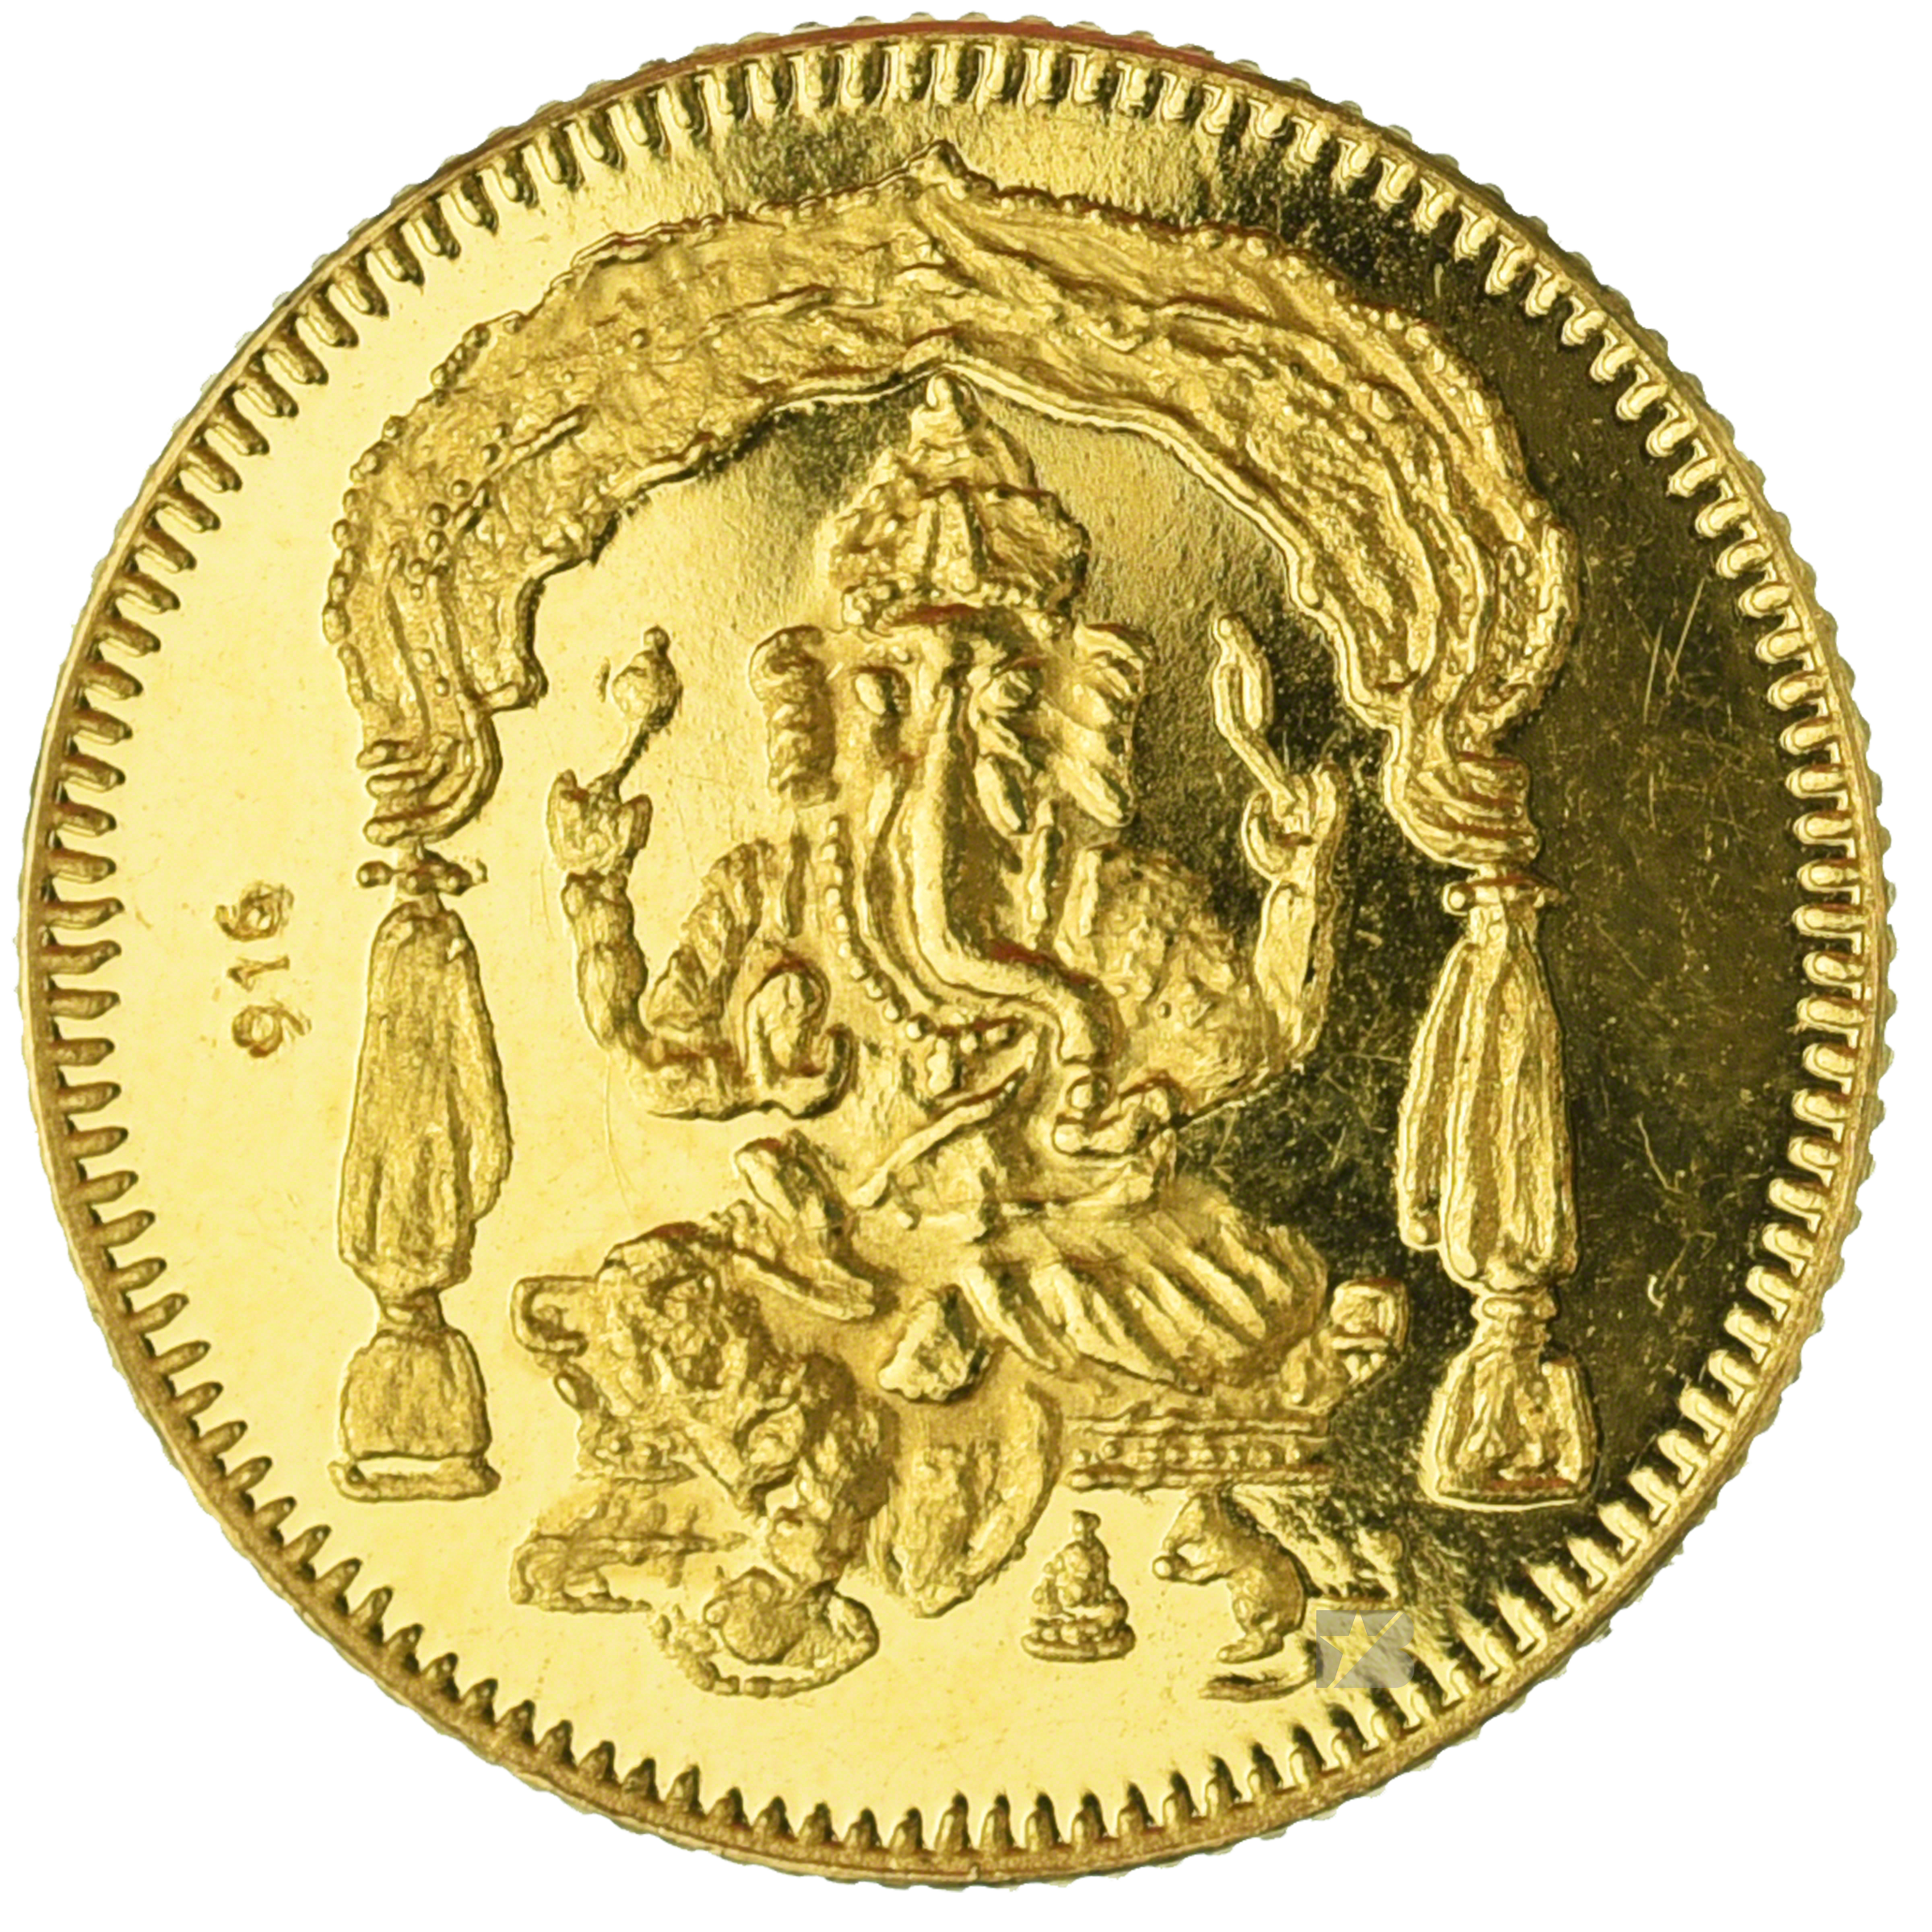 position in image of front gautama bigstock buddha stock rtha retro showing silhouette coin style medallion illustration shakyamuni done gold photo a lotus from viewed siddh